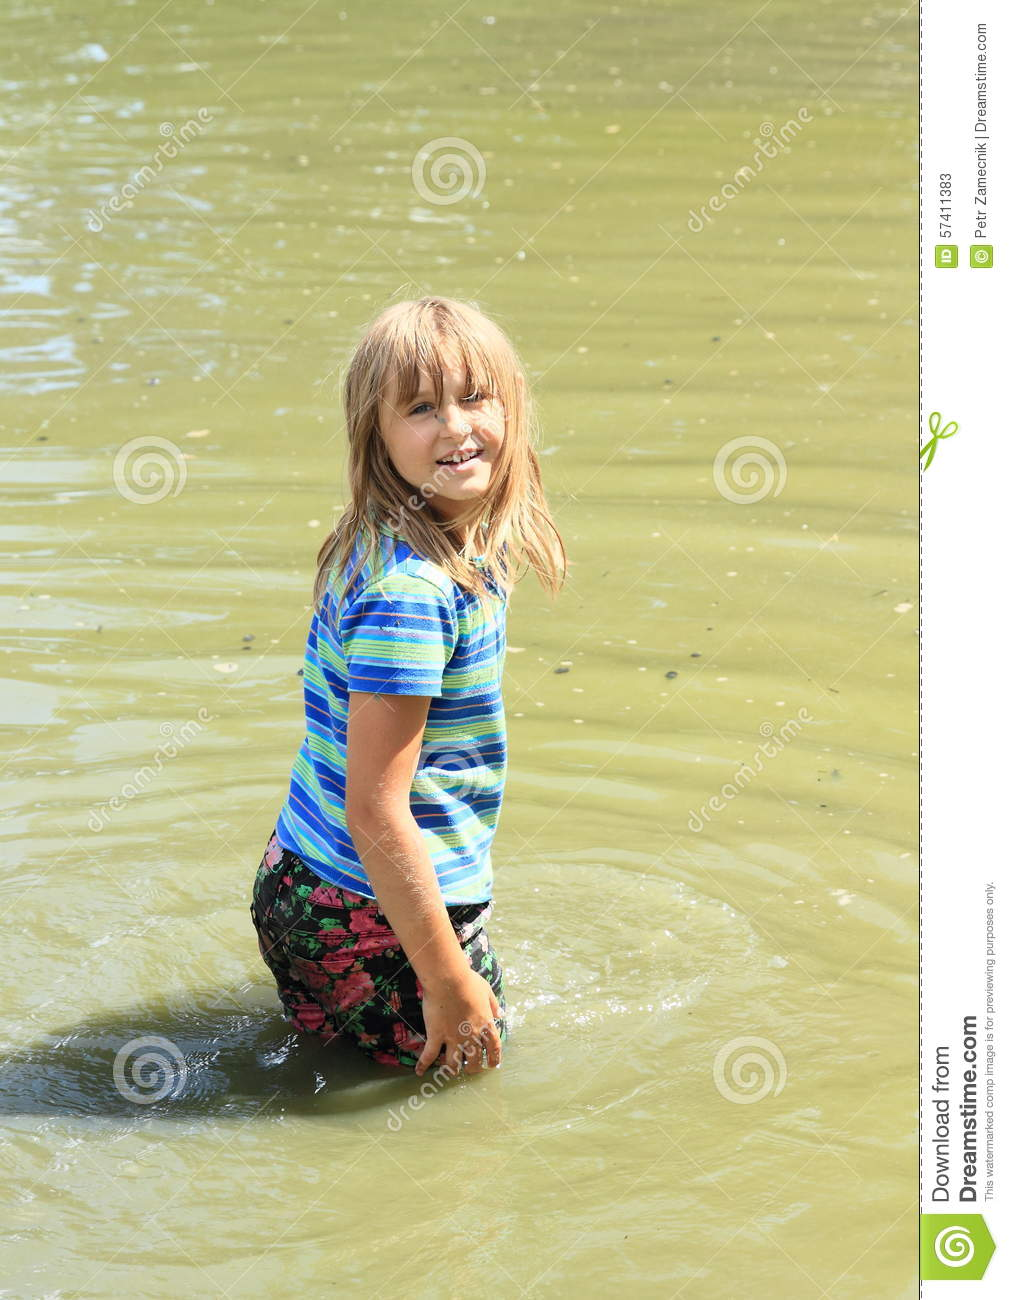 Israil Pron Young Girl Wet Clothes